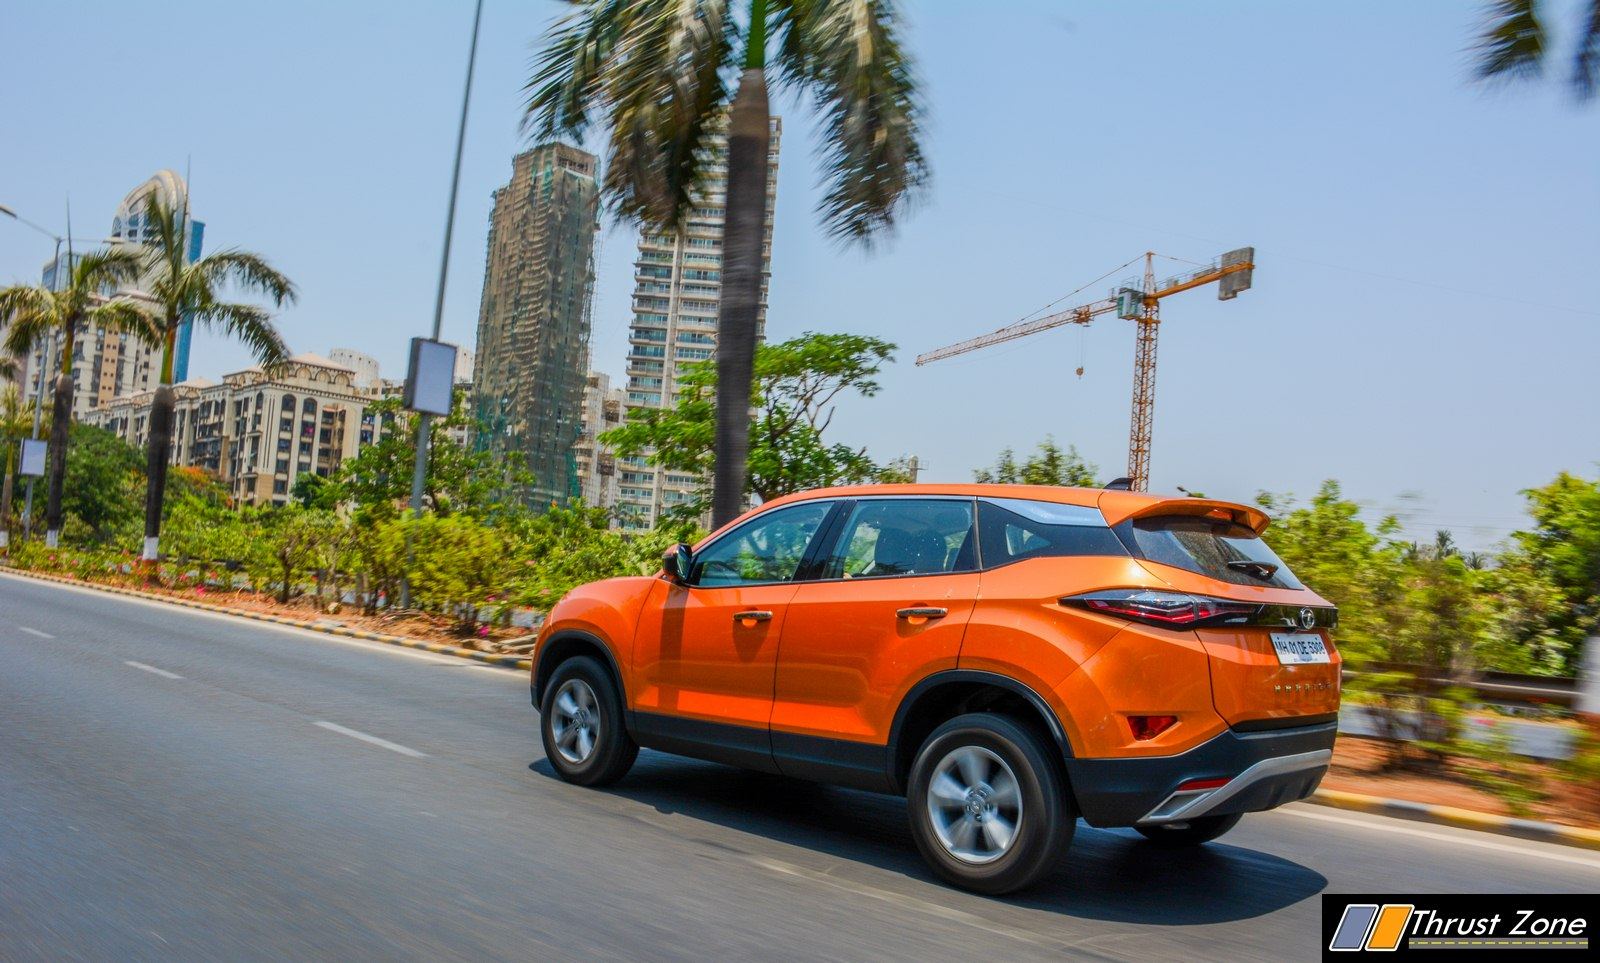 2019-Tata-harrier-diesel-manual-review-25